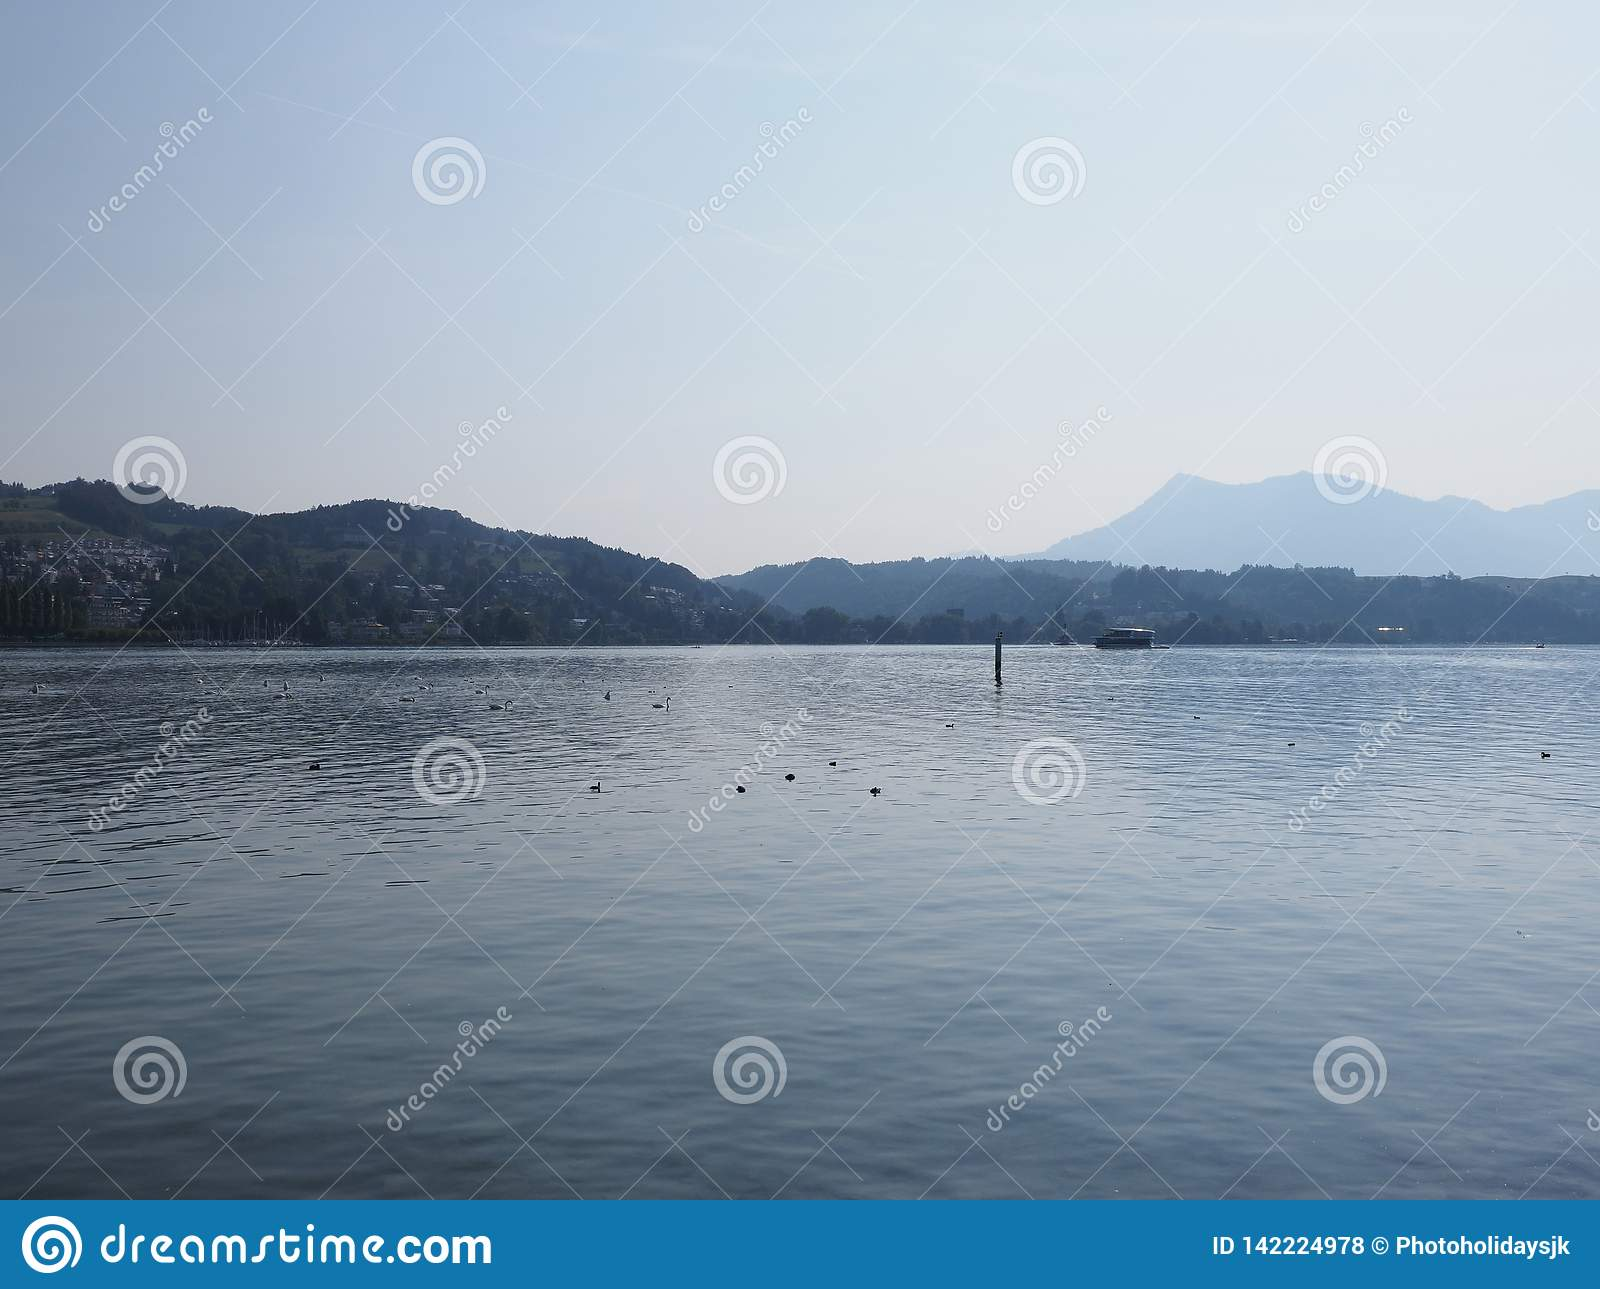 Lakeside view in european Lucerne city at lake landscape in Switzerland